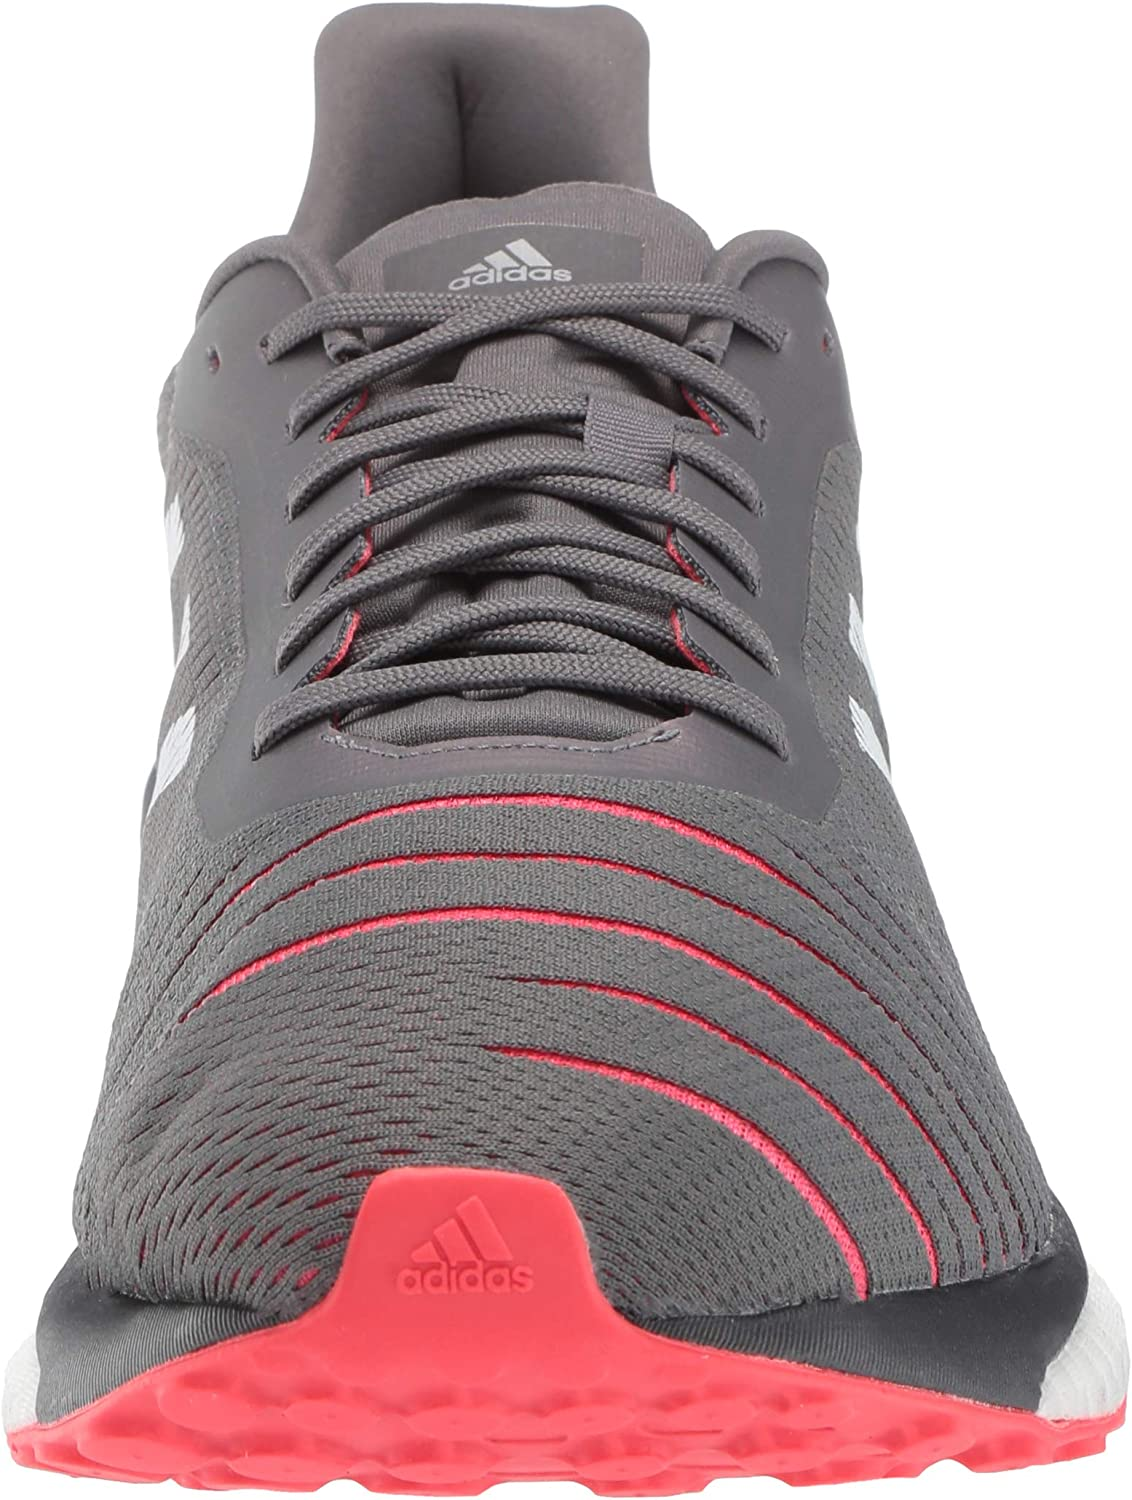 adidas Men s Solar Drive Running Shoe